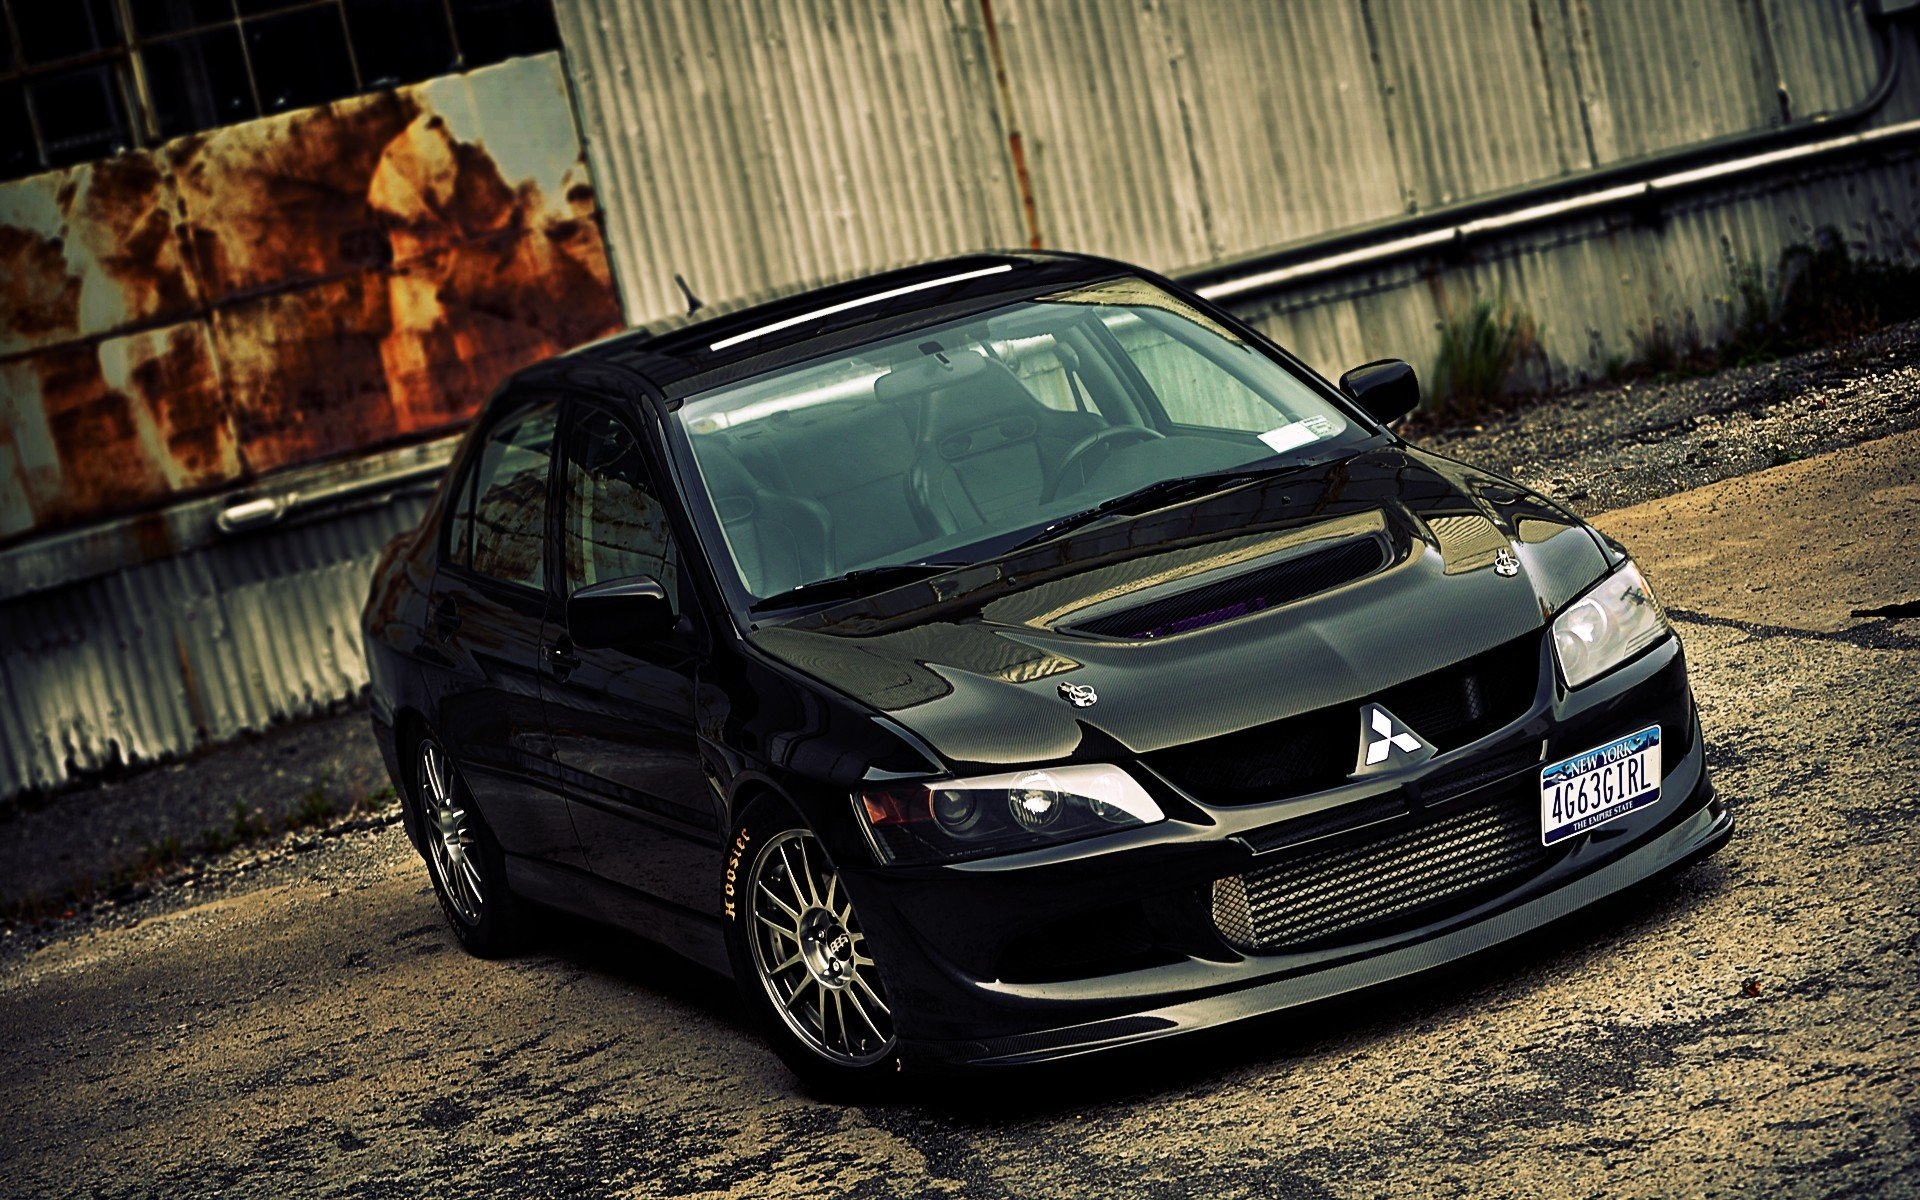 44 Mitsubishi Evo 8 Wallpaper On Wallpapersafari